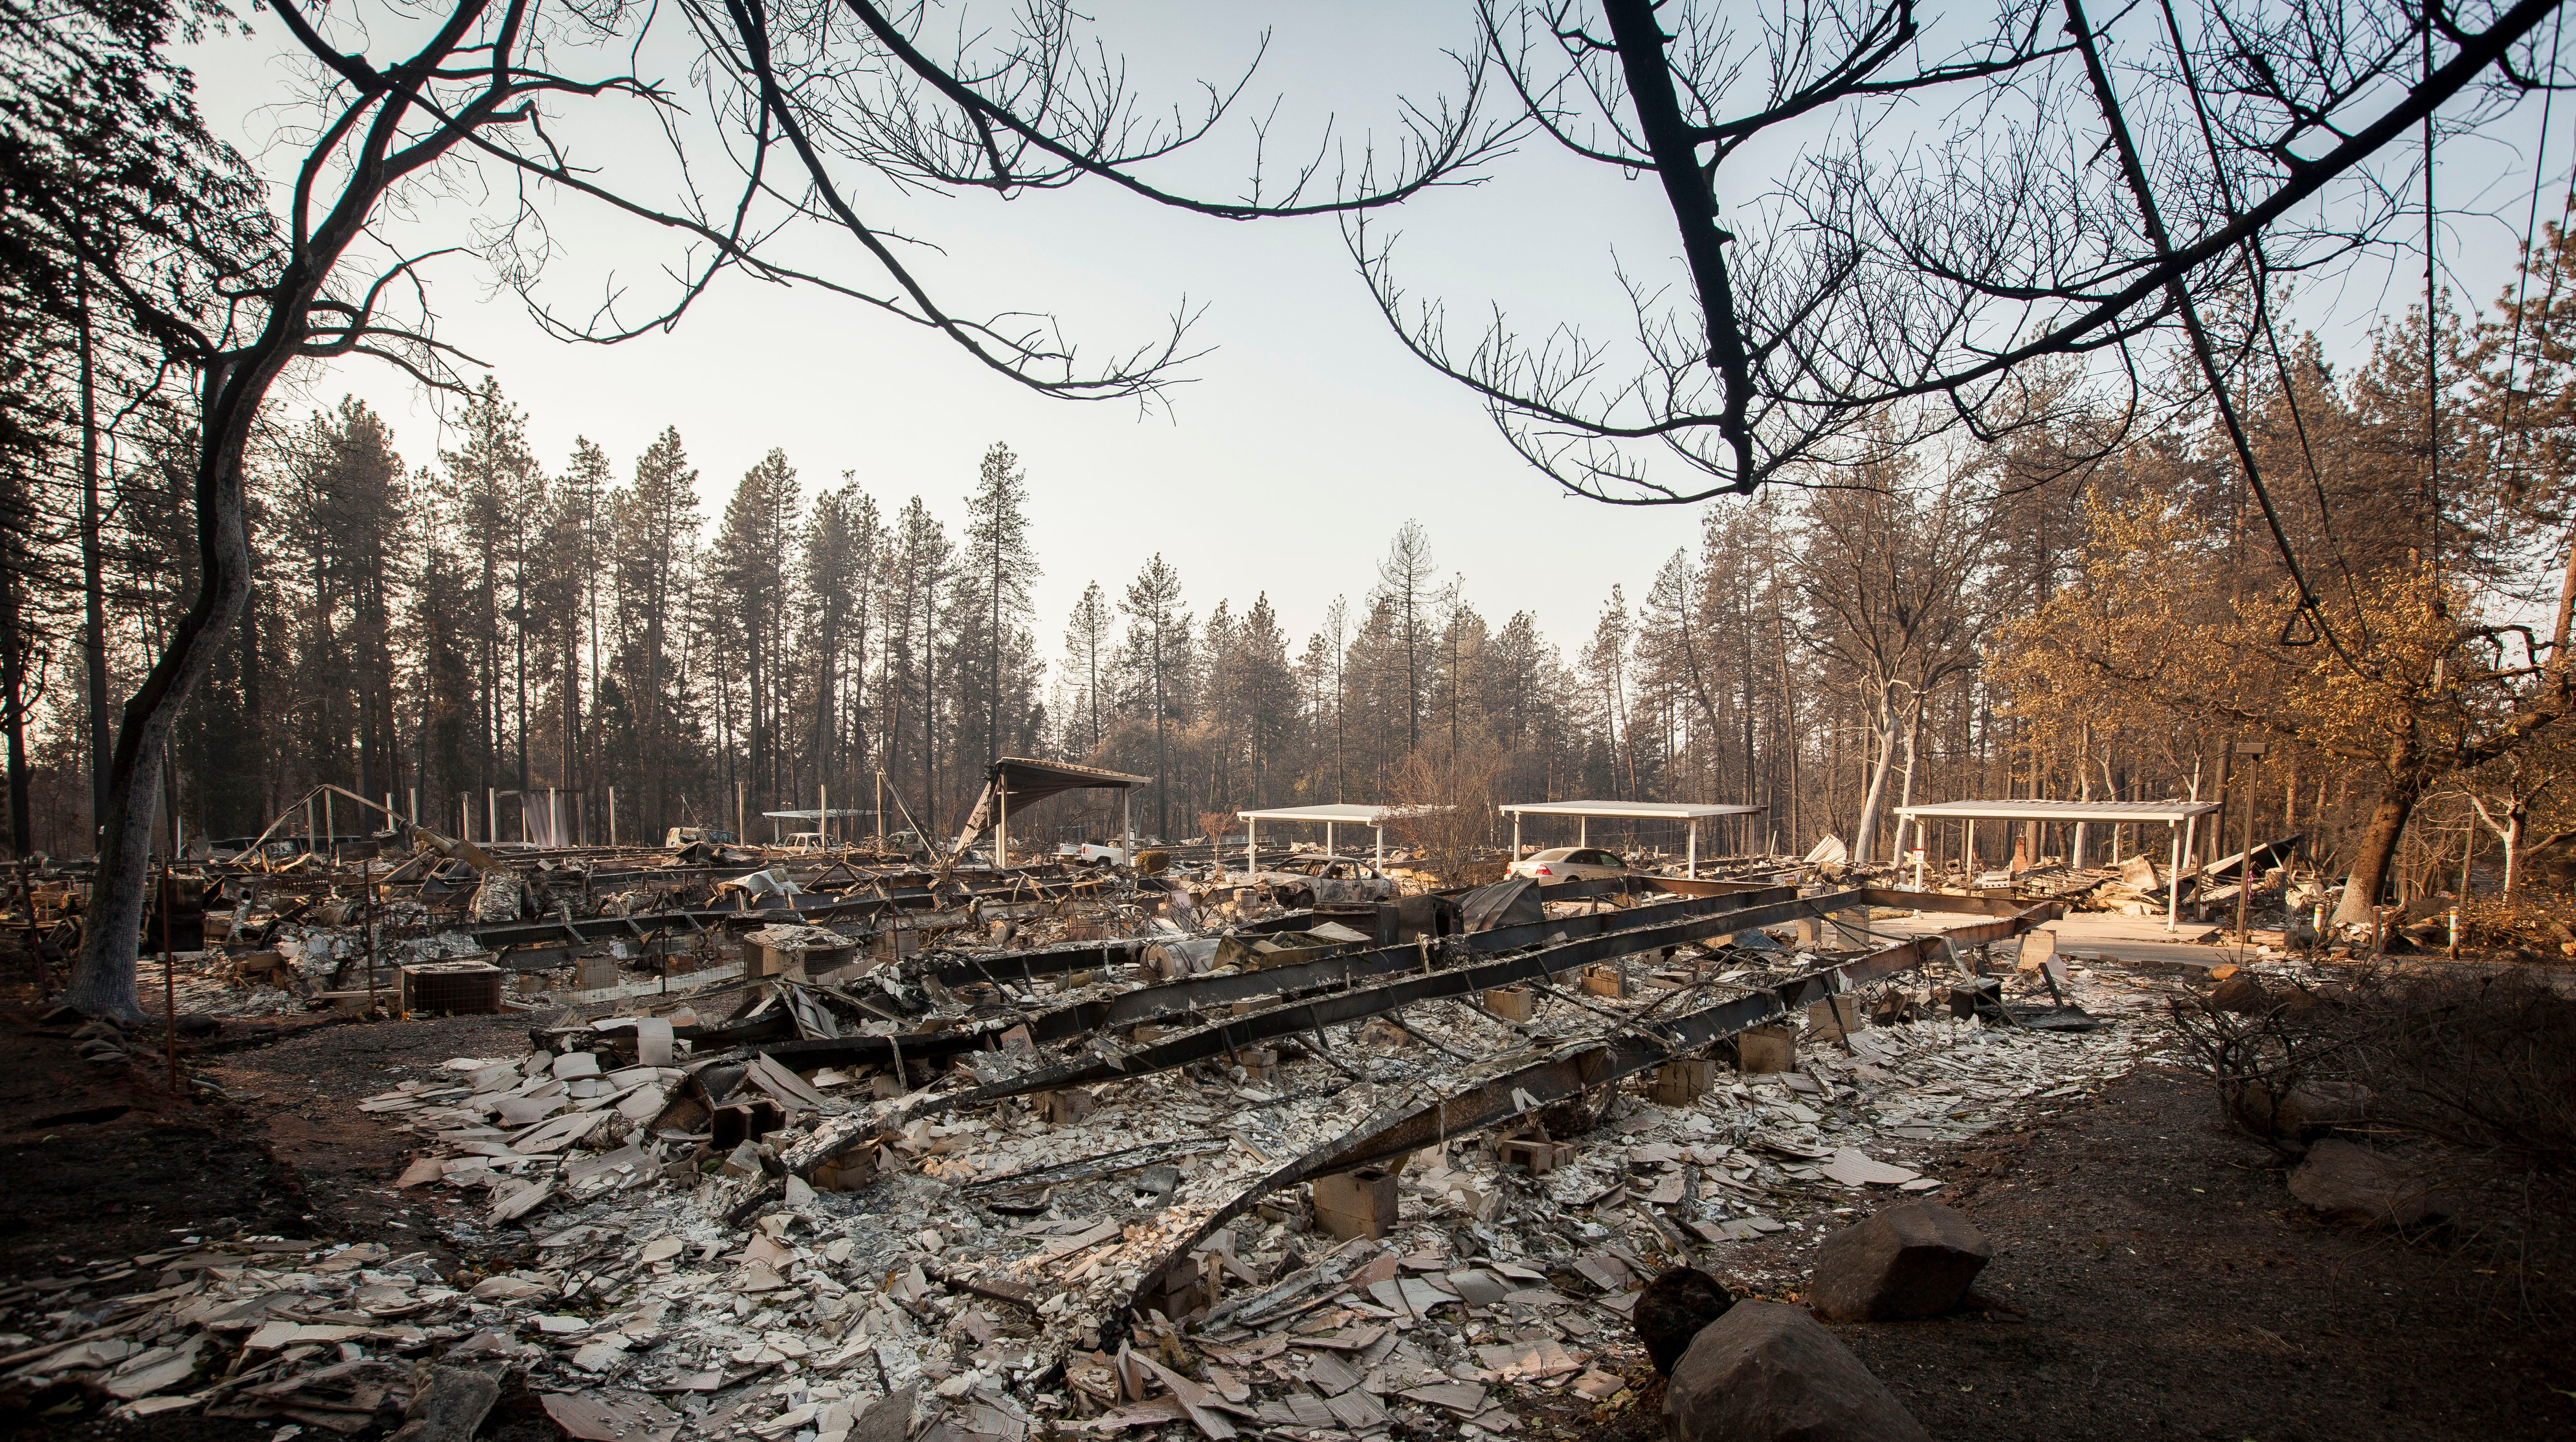 The Camp Fire burned so quickly through the town of Paradise that little remains recognizable from the Paradise Mobile Home Park that once was filled with homes.